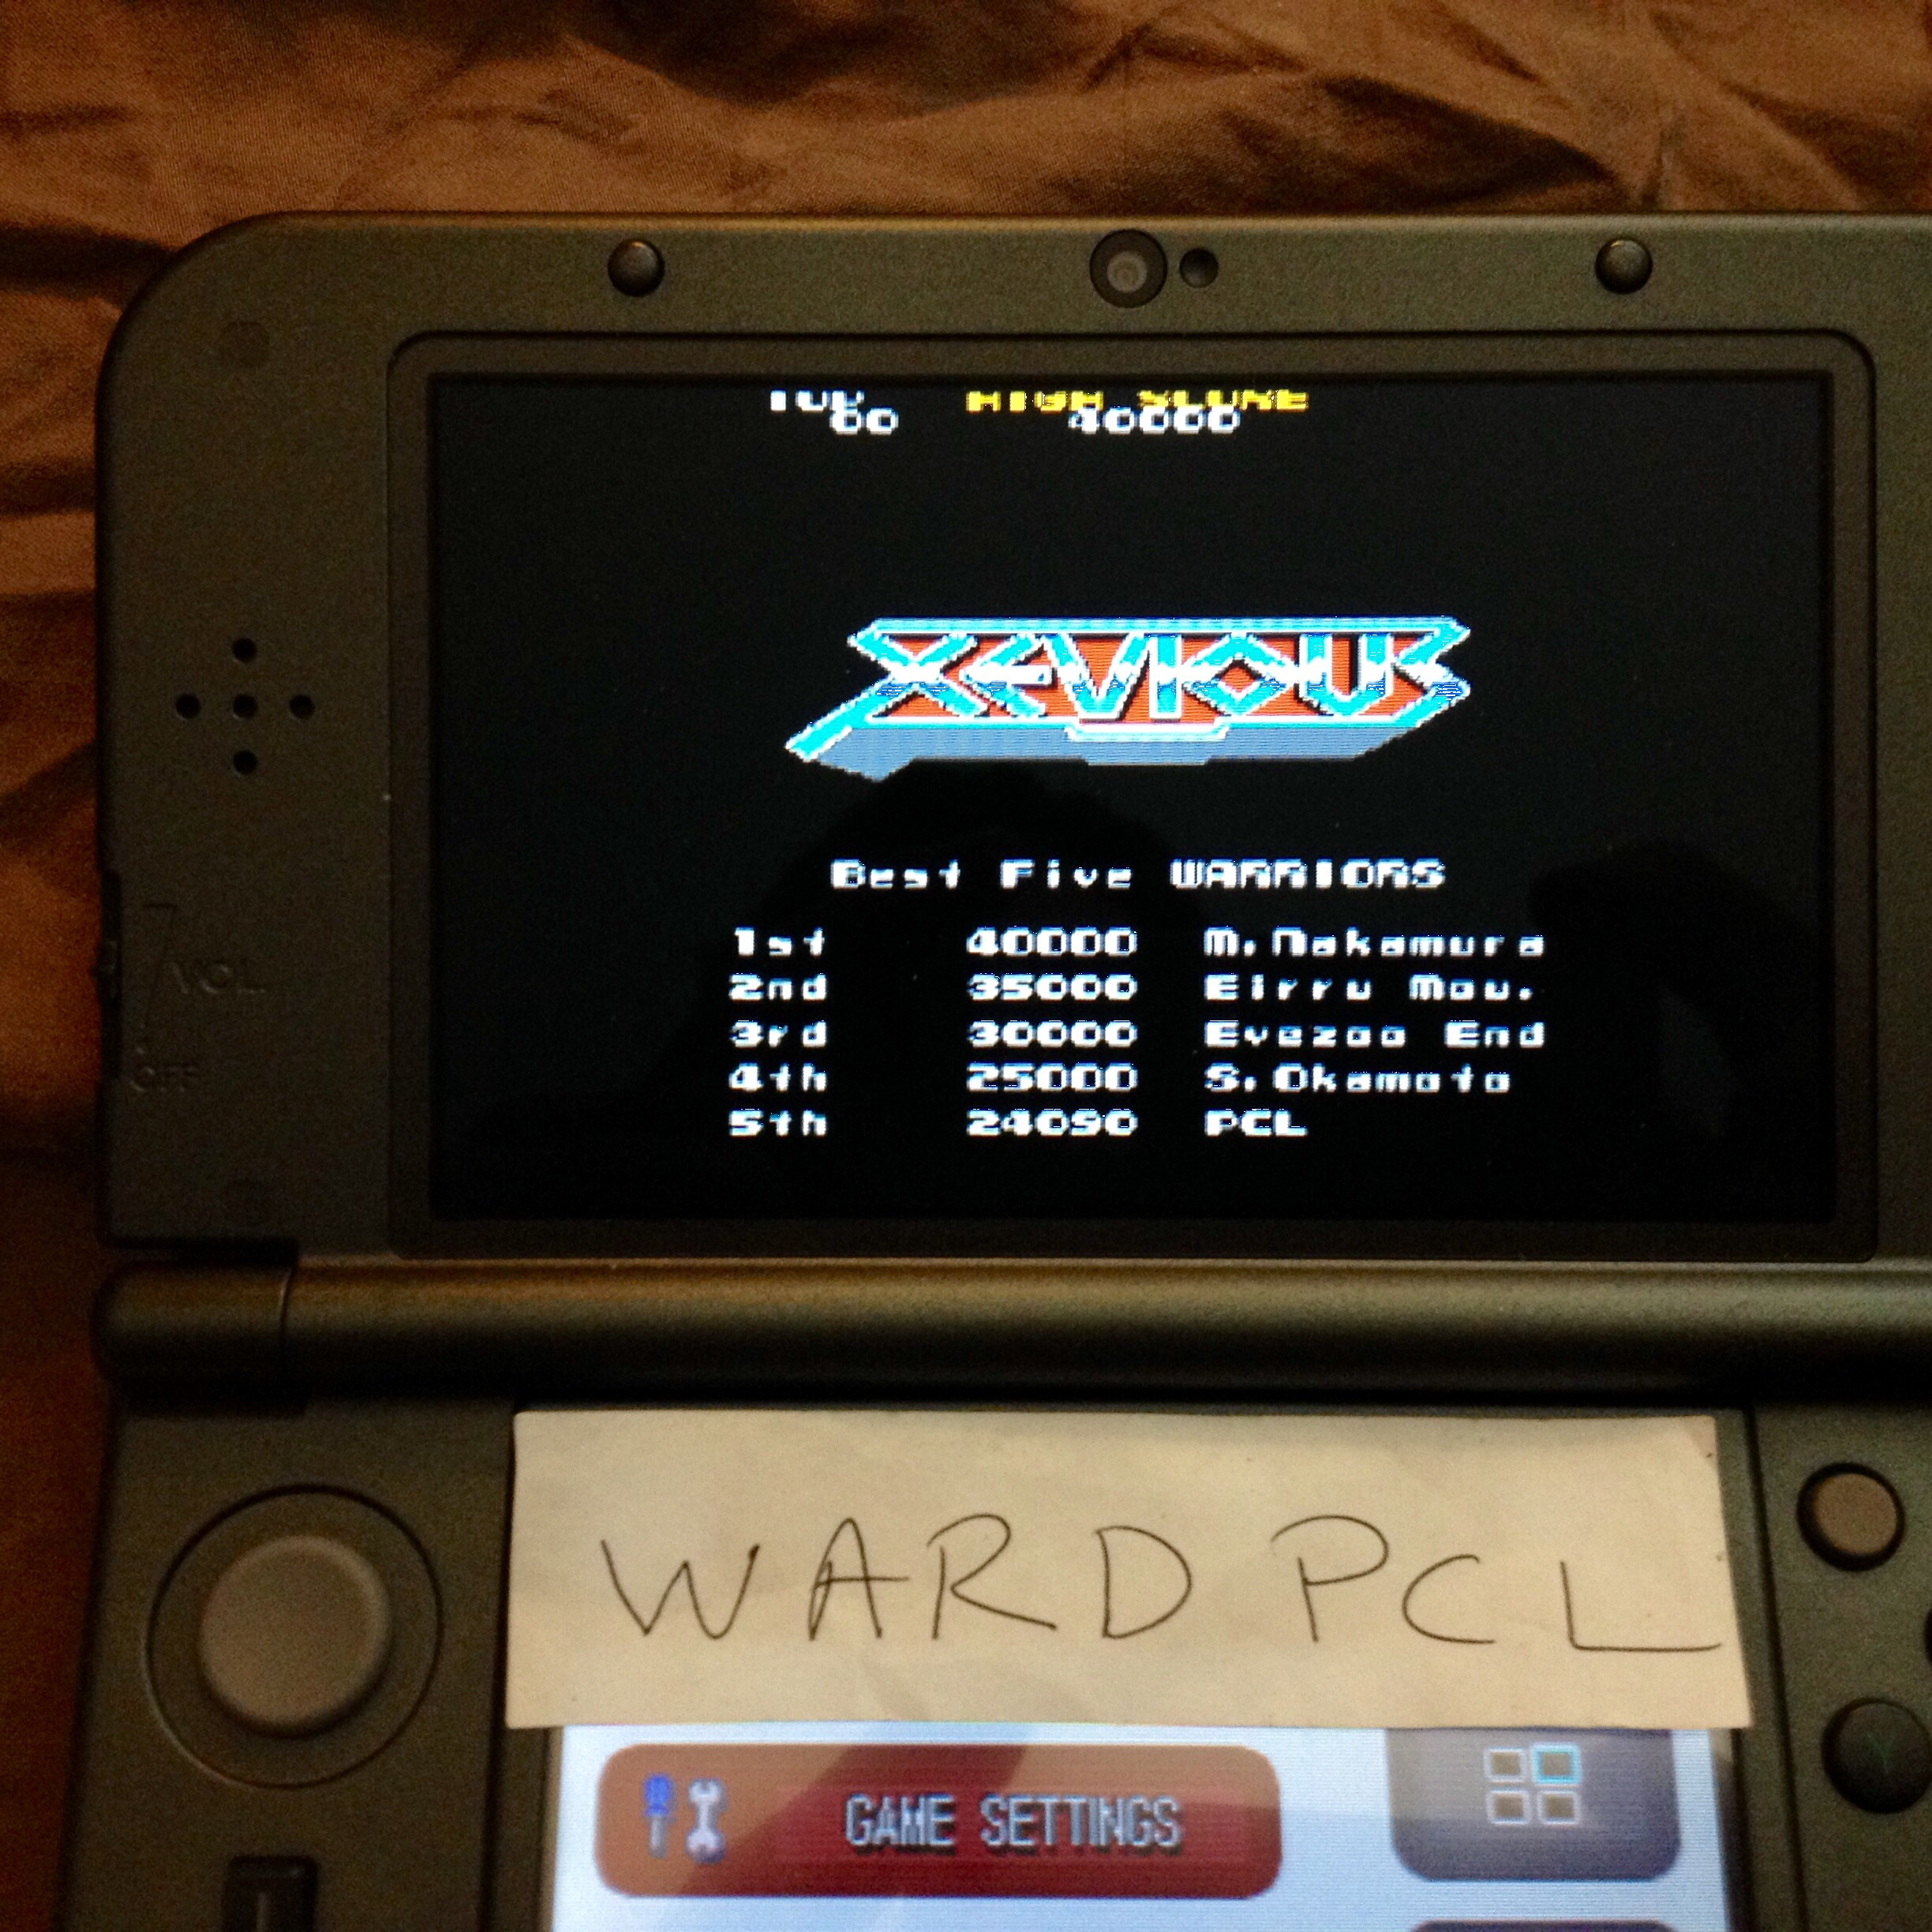 Wardpcl: Namco Museum: Xevious (Nintendo DS) 24,090 points on 2015-08-02 15:17:08